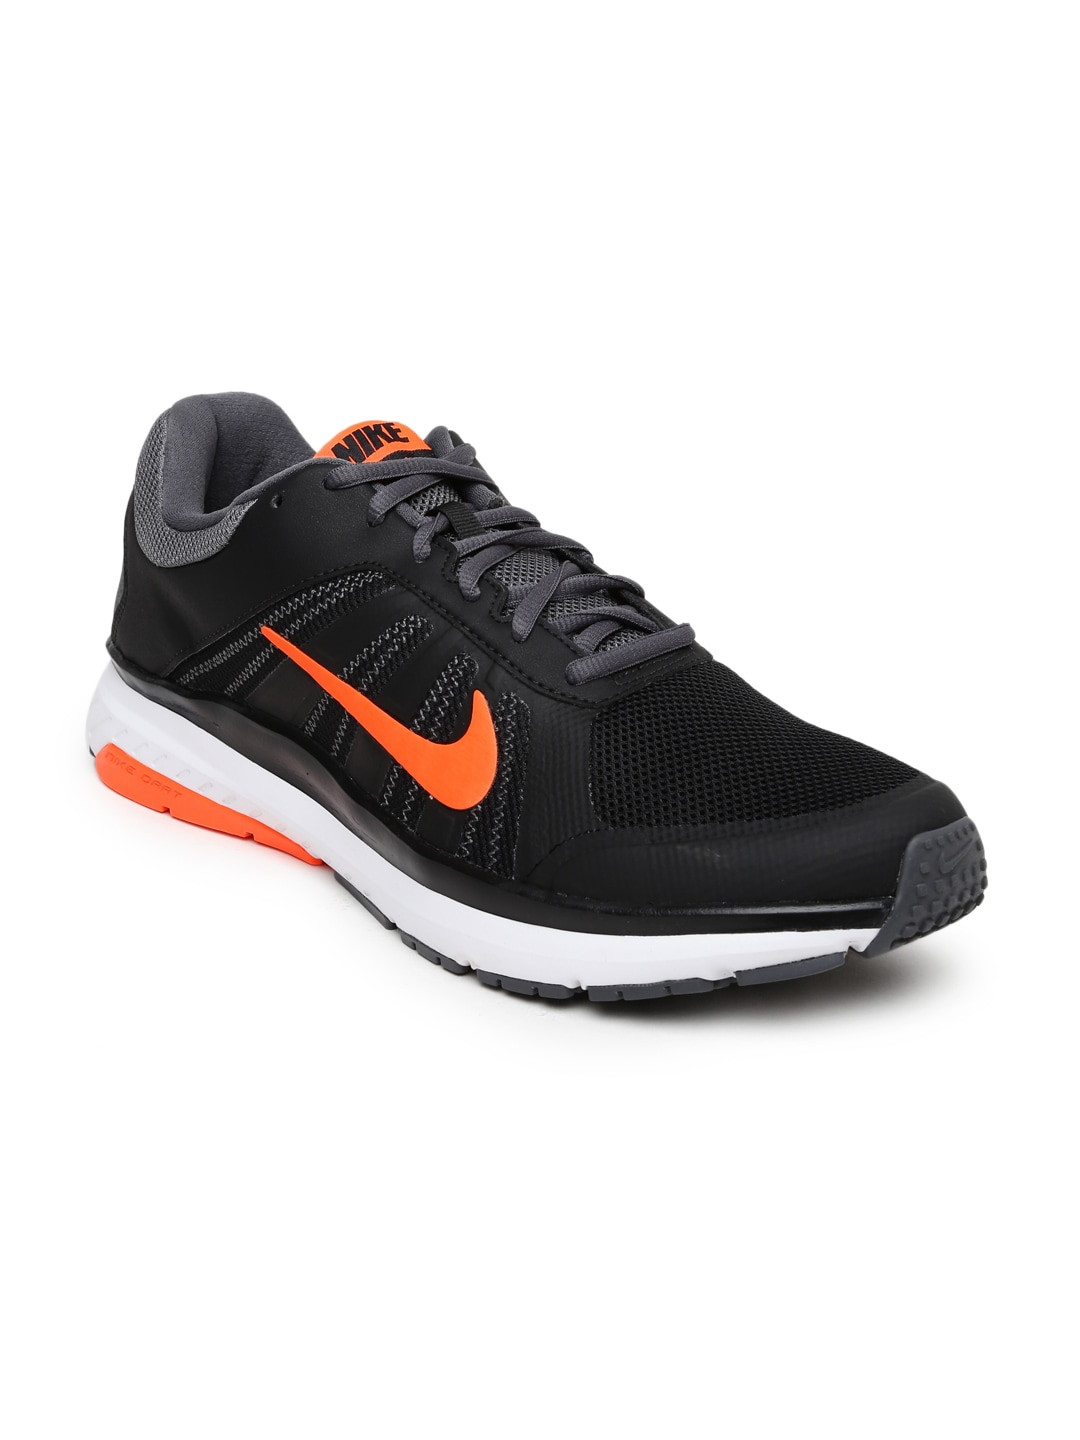 6f4487092622 Nike Men Black Dart 12 MSL Running Shoes